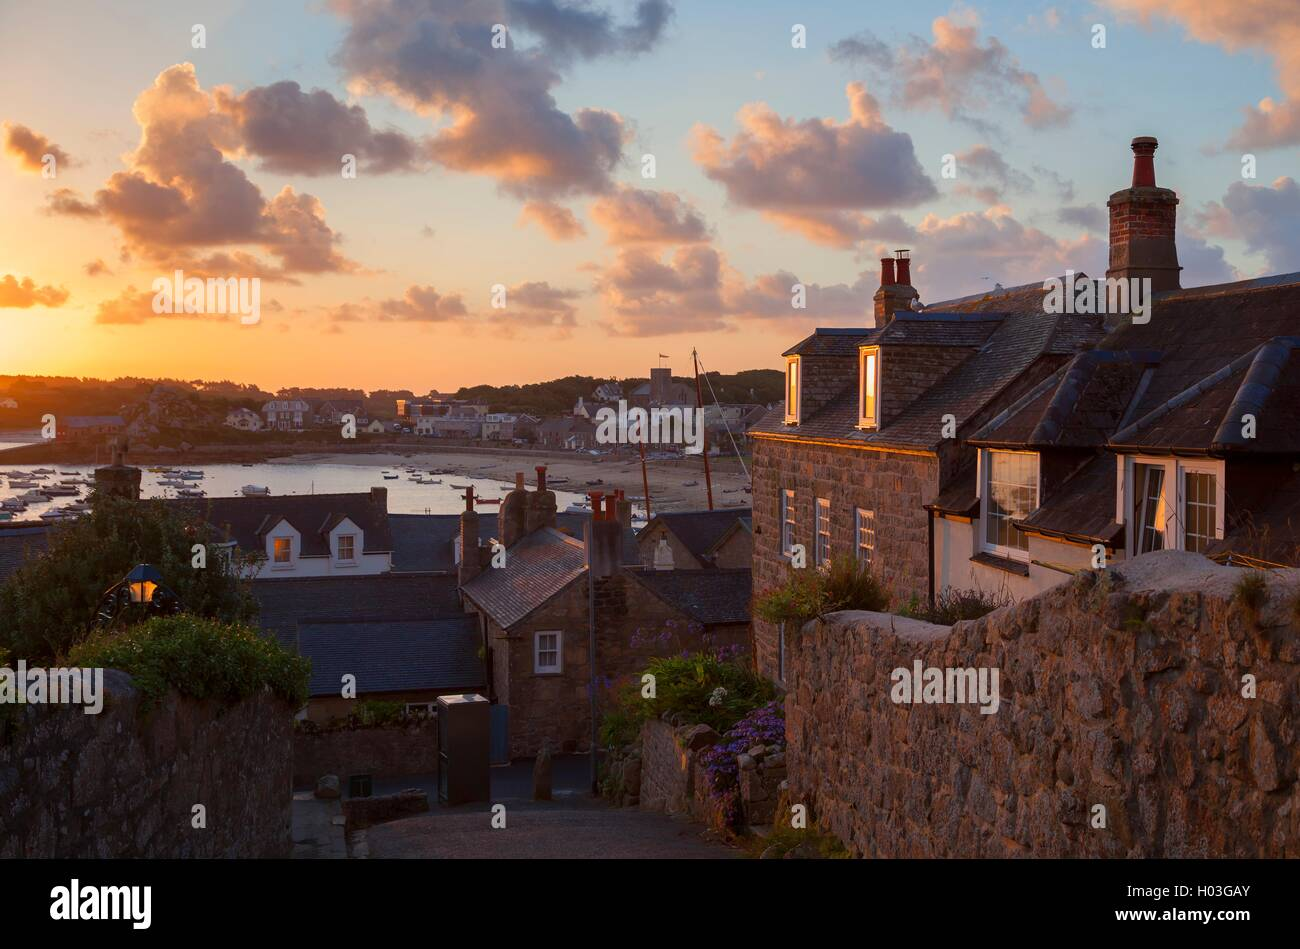 Hugh Town at dawn, St Mary's, Isles of Scilly, England - Stock Image